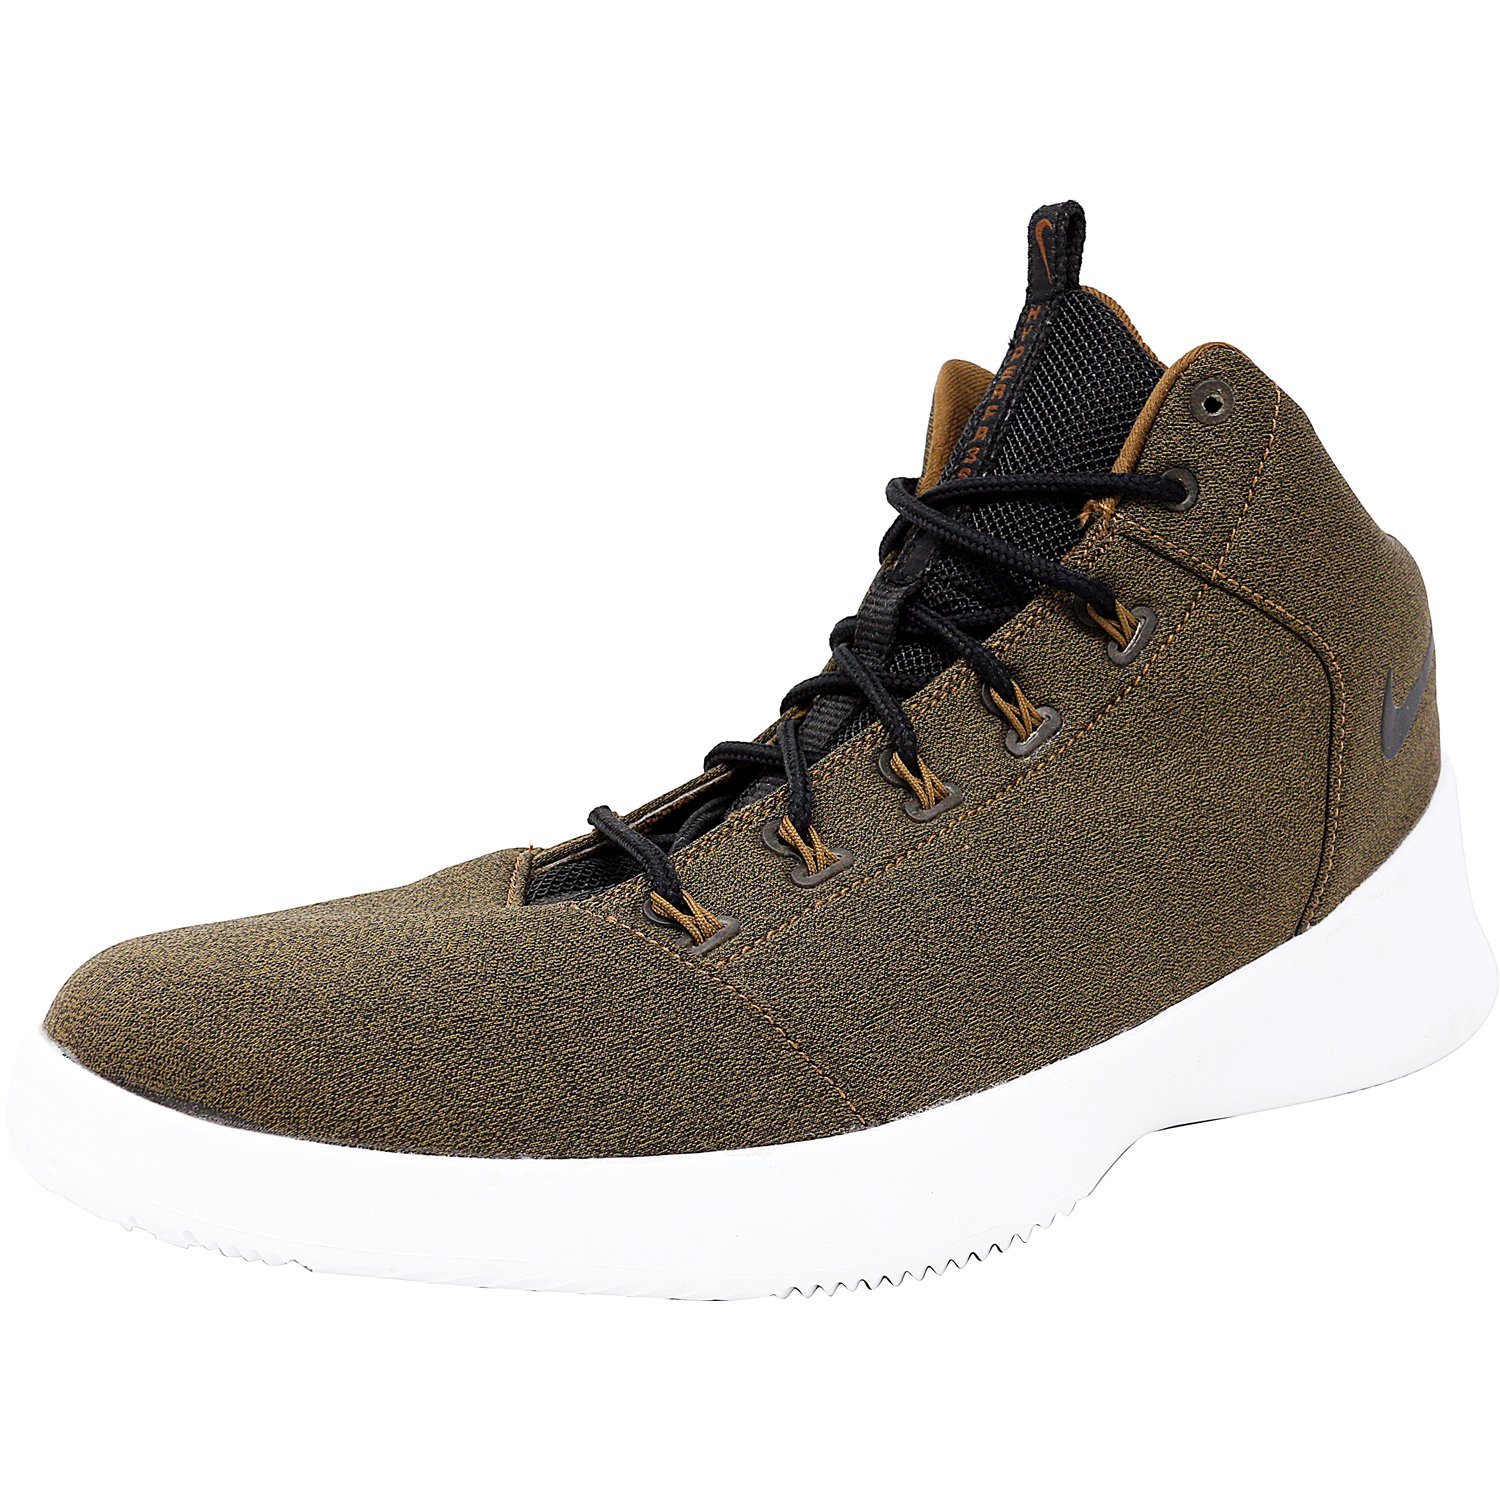 784df8315675 Nike Men s 759996 200 Ankle-High Fabric Basketball Shoe - 11.5M